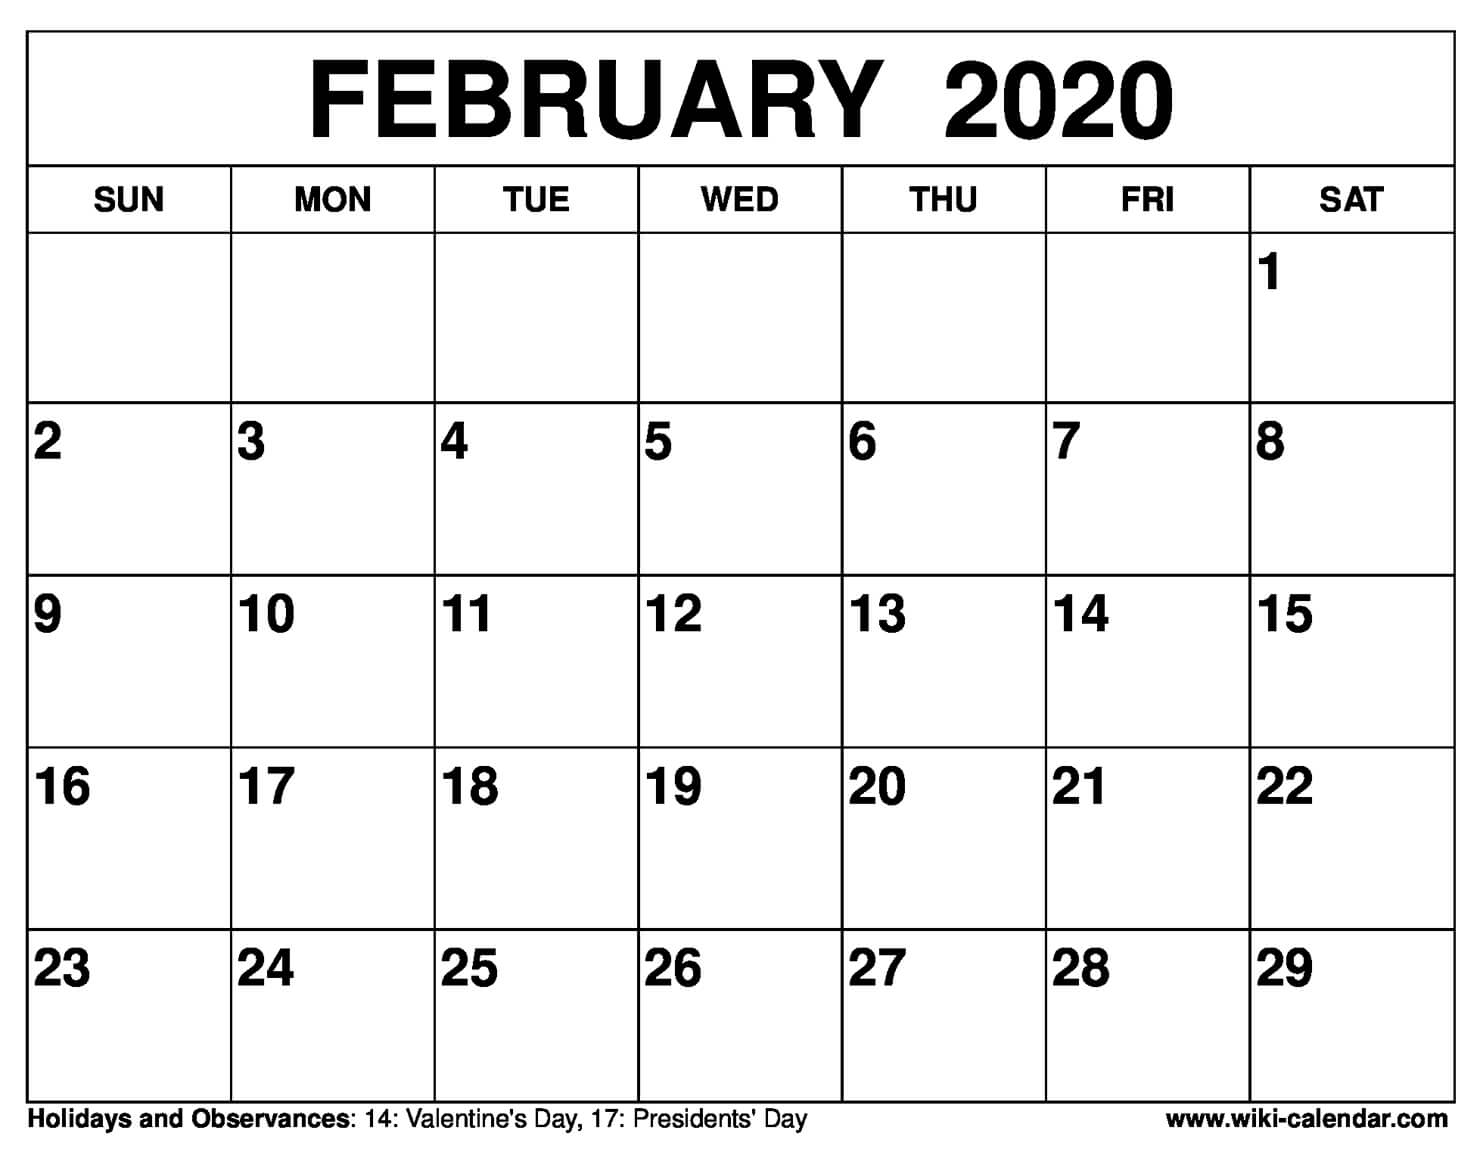 Monthly Calendar February 2020 Printable  Bolan with February 2020 Daily Calendar